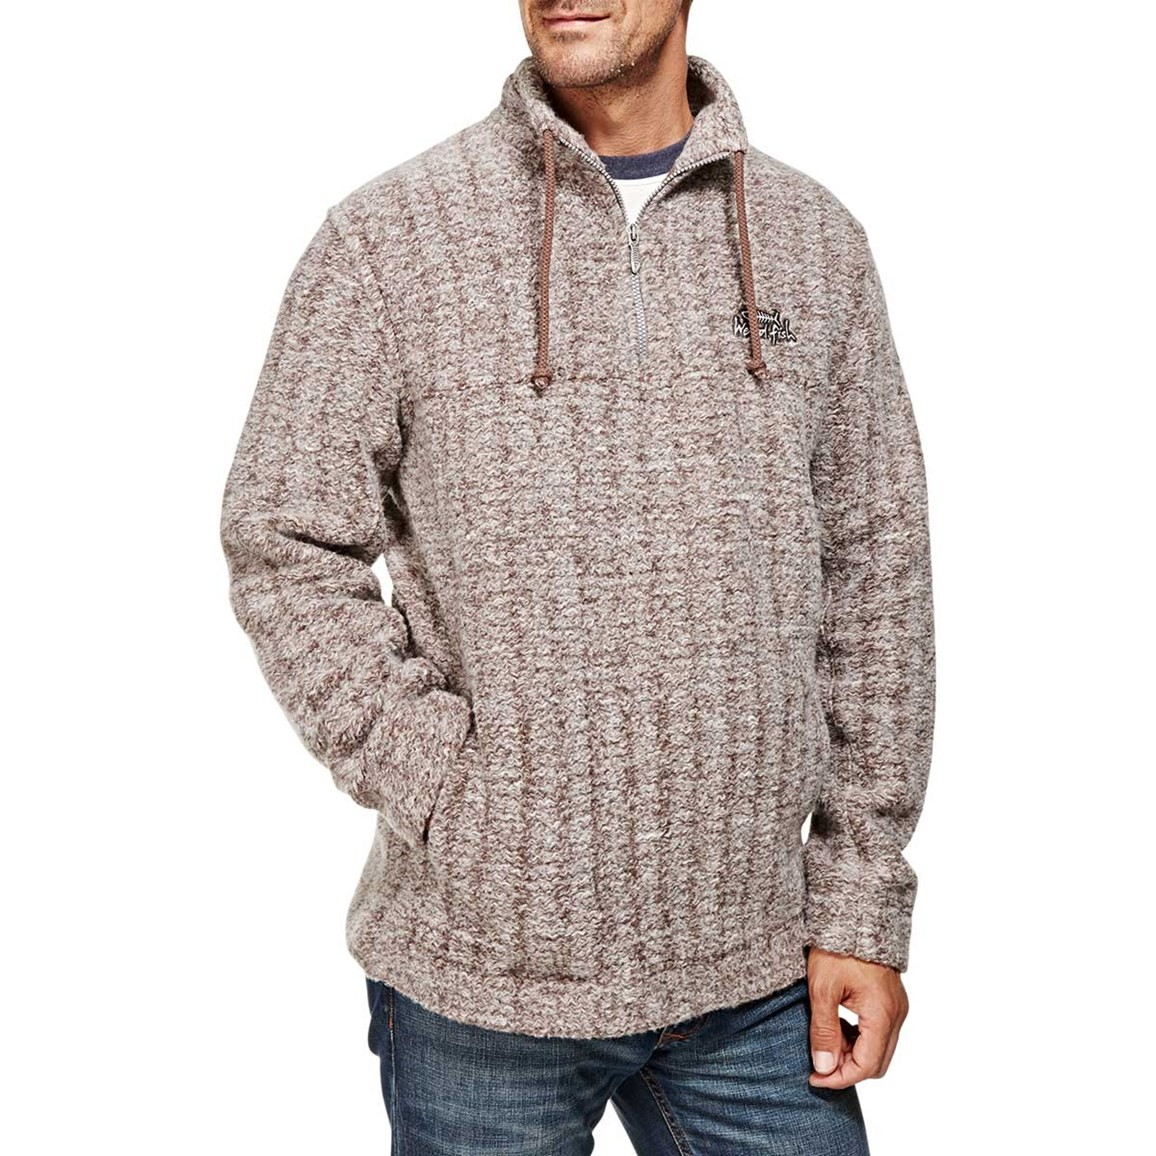 Image of Aardvark Panelled 1/4 Zip Soft Knit Fleece Sweatshirt Mink